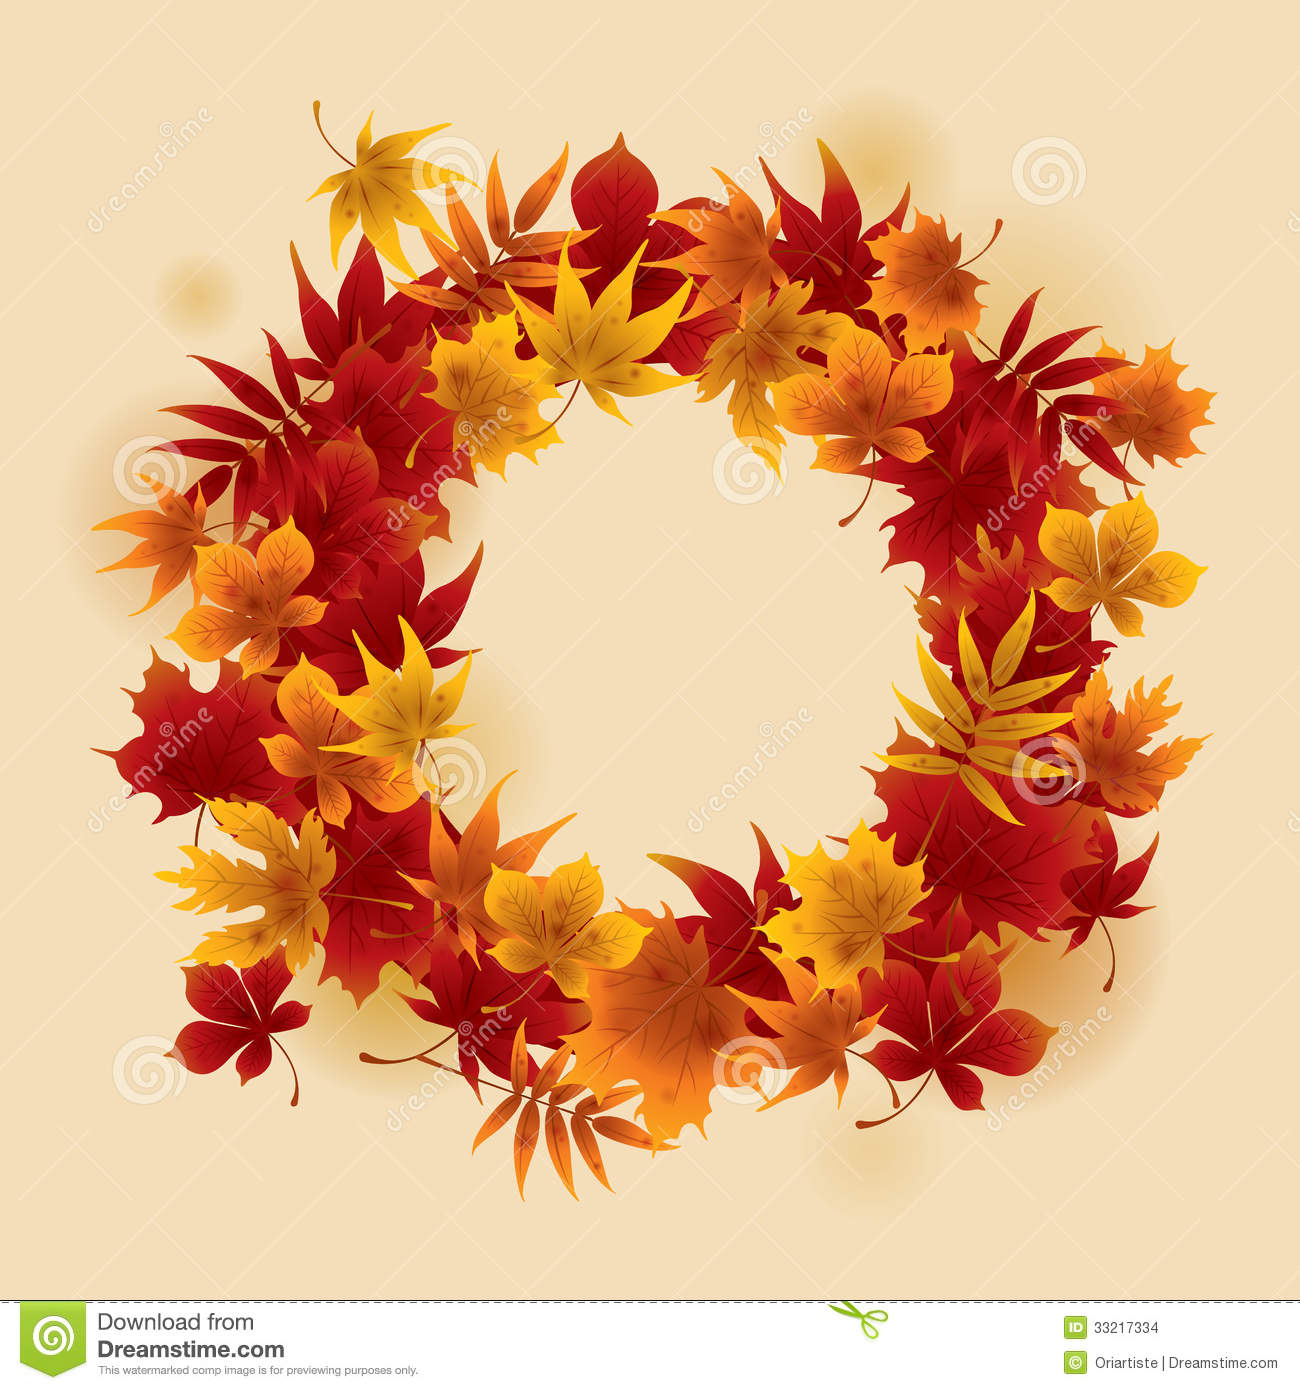 Fall Leaves Watercolor Wallpaper Autumn Wreath Stock Vector Illustration Of Nature Wreath